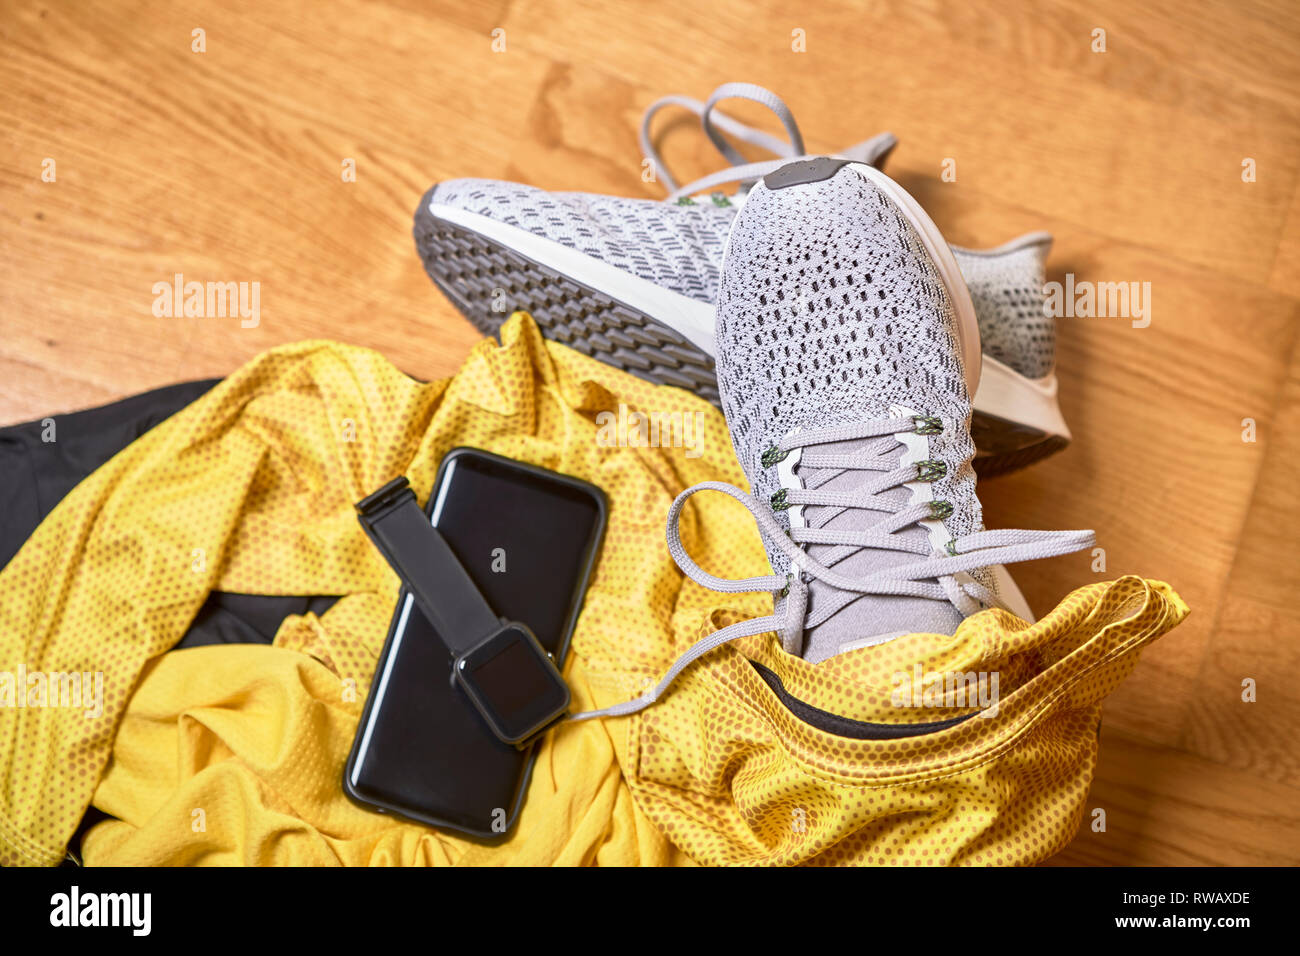 running shoes with a t-shirt, pants and technological accessories on a wooden gym floor Stock Photo